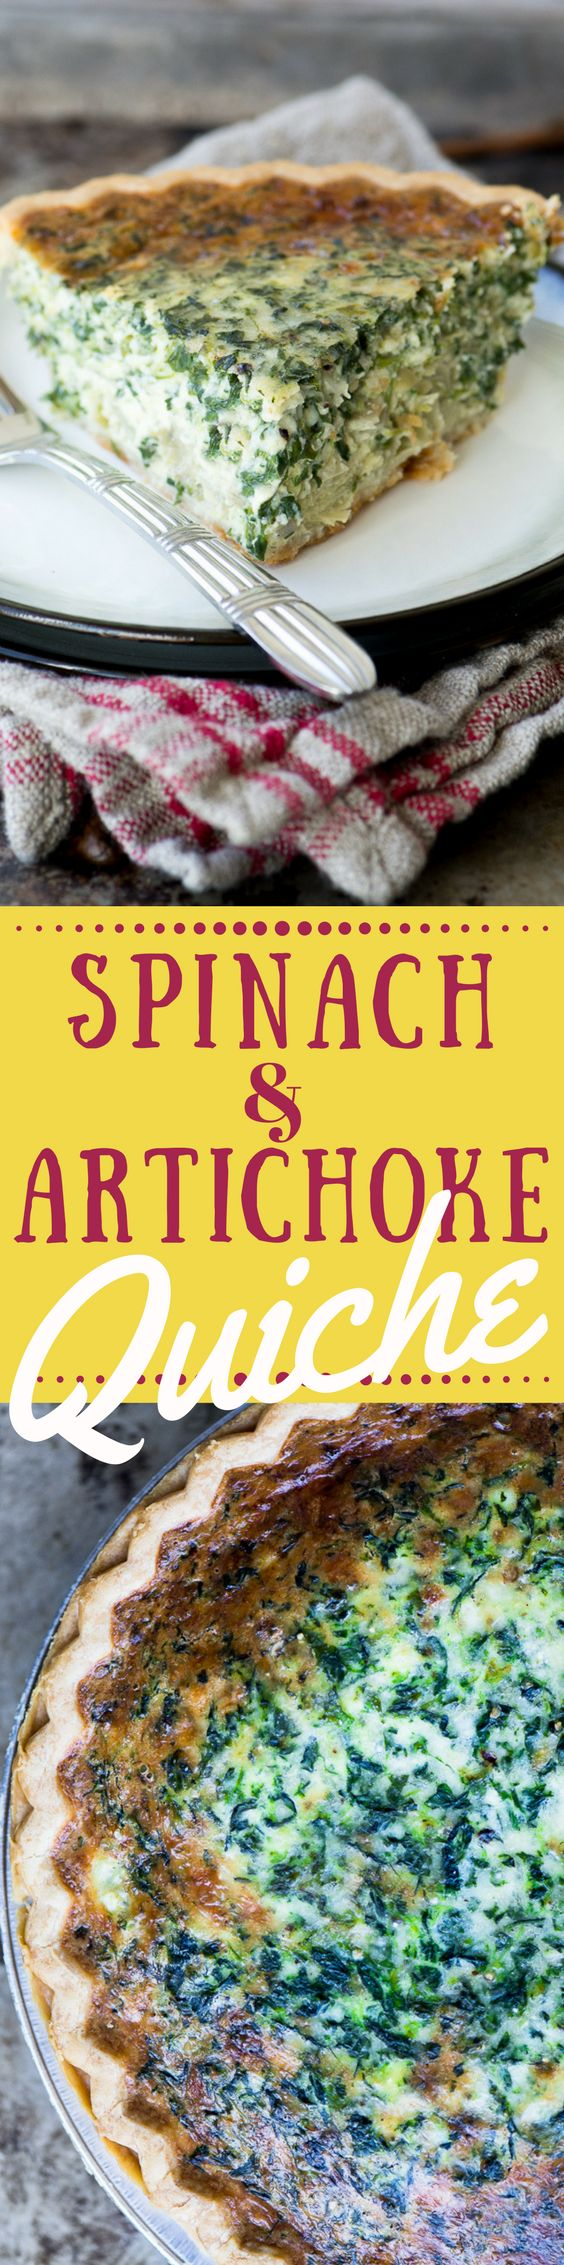 Spinach and Artichoke Quiche marries my favorite lazy day dinner with my favorite cheesy hot dip. It's an easy meatless meal that proves that comfort food isn't all about meat and potatoes.